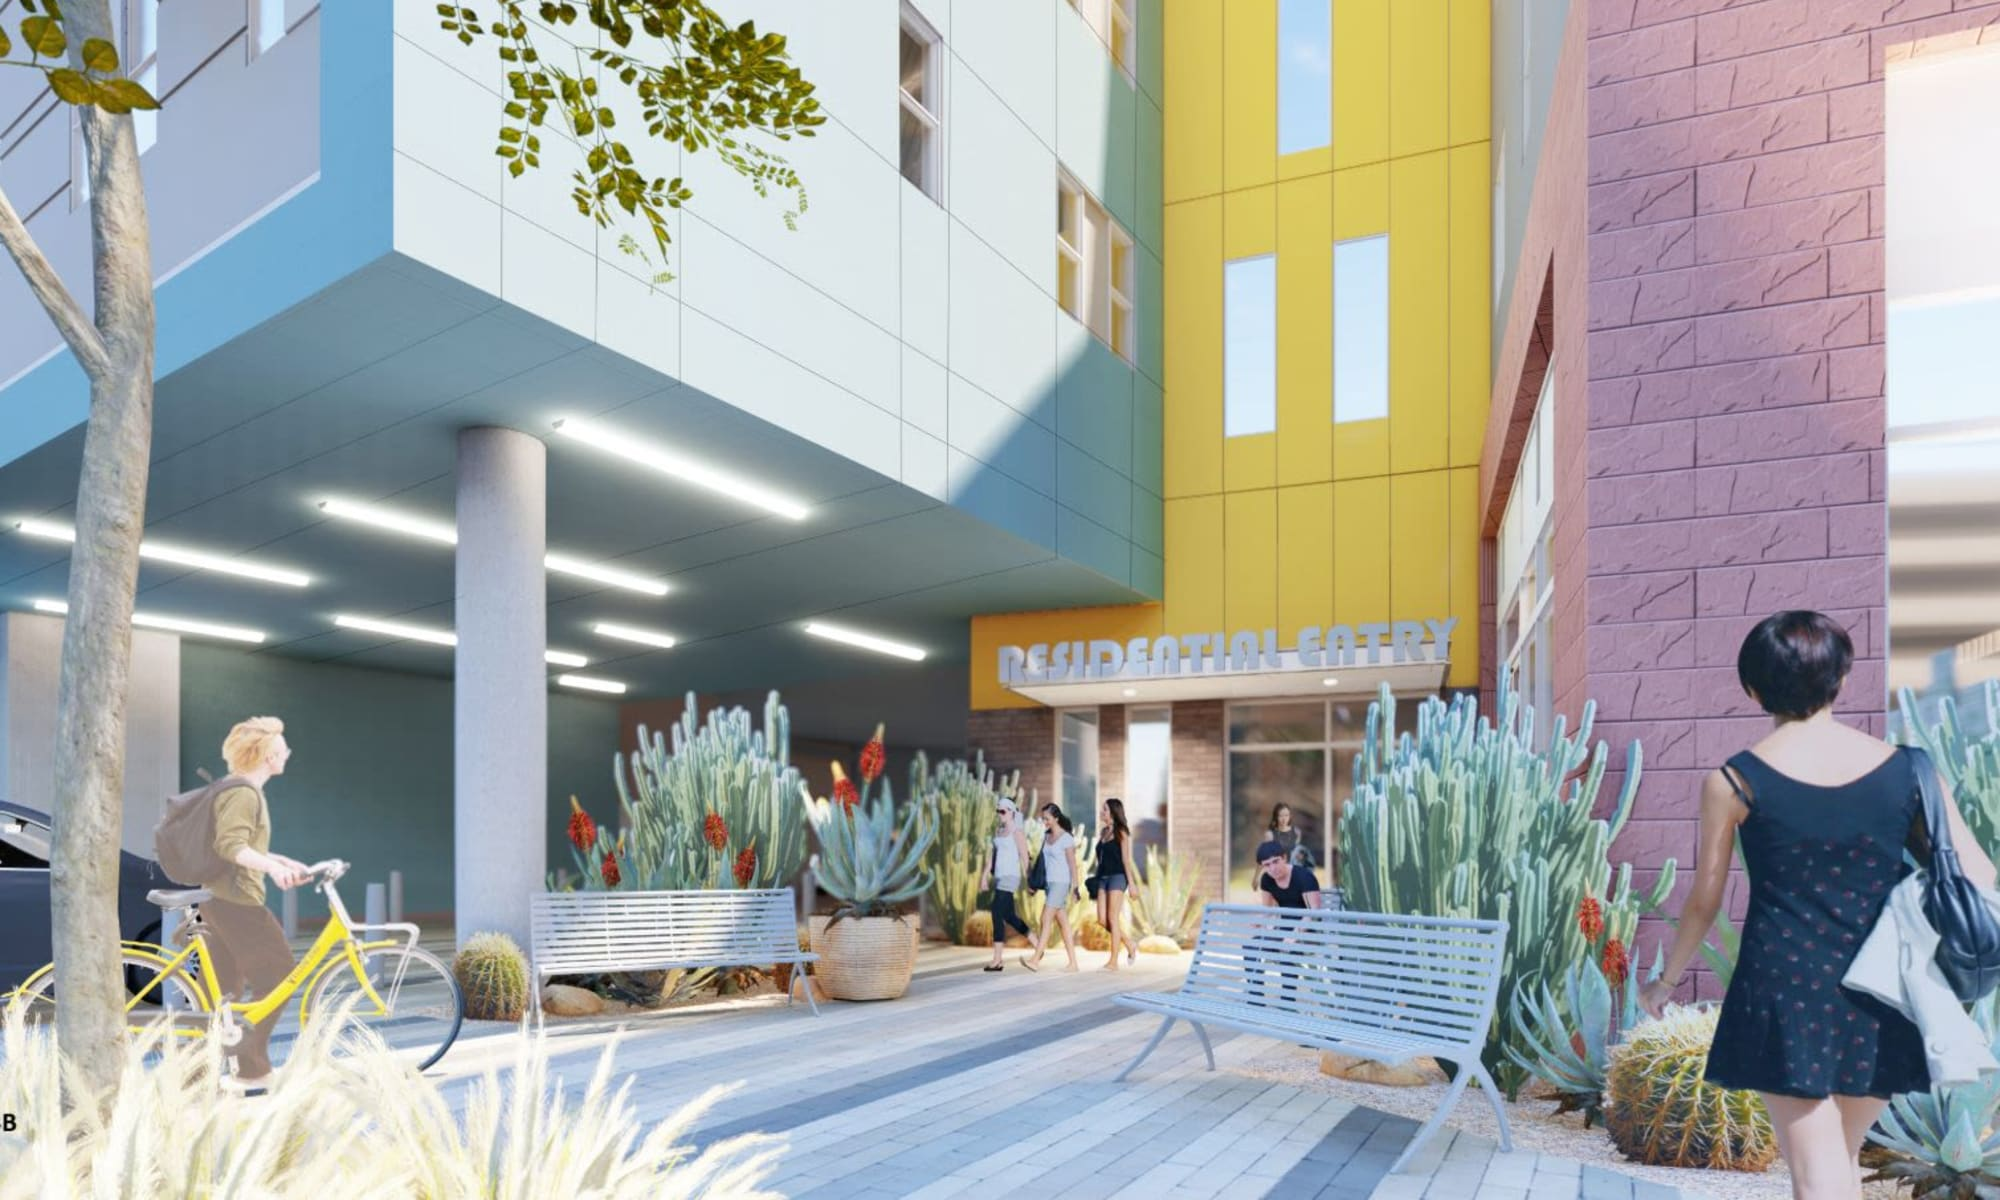 Rendering of the exterior entrance of The Piedmont in Tempe, Arizona